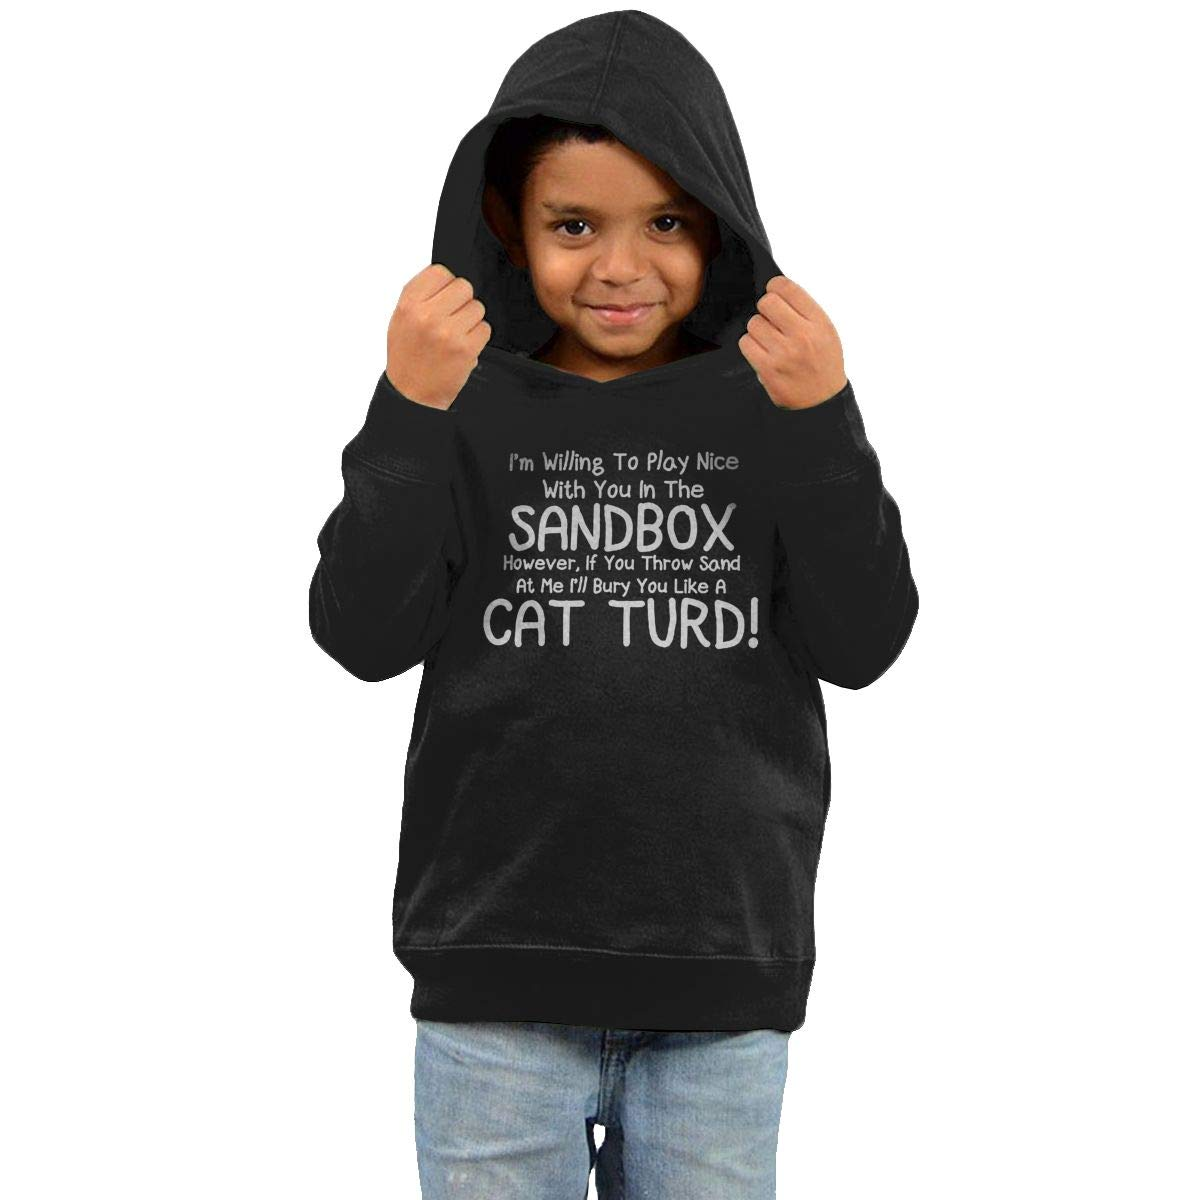 Childrens Hooded Sweater Im Willing to Play Nice with You in The Sandbox Children Sweater Black